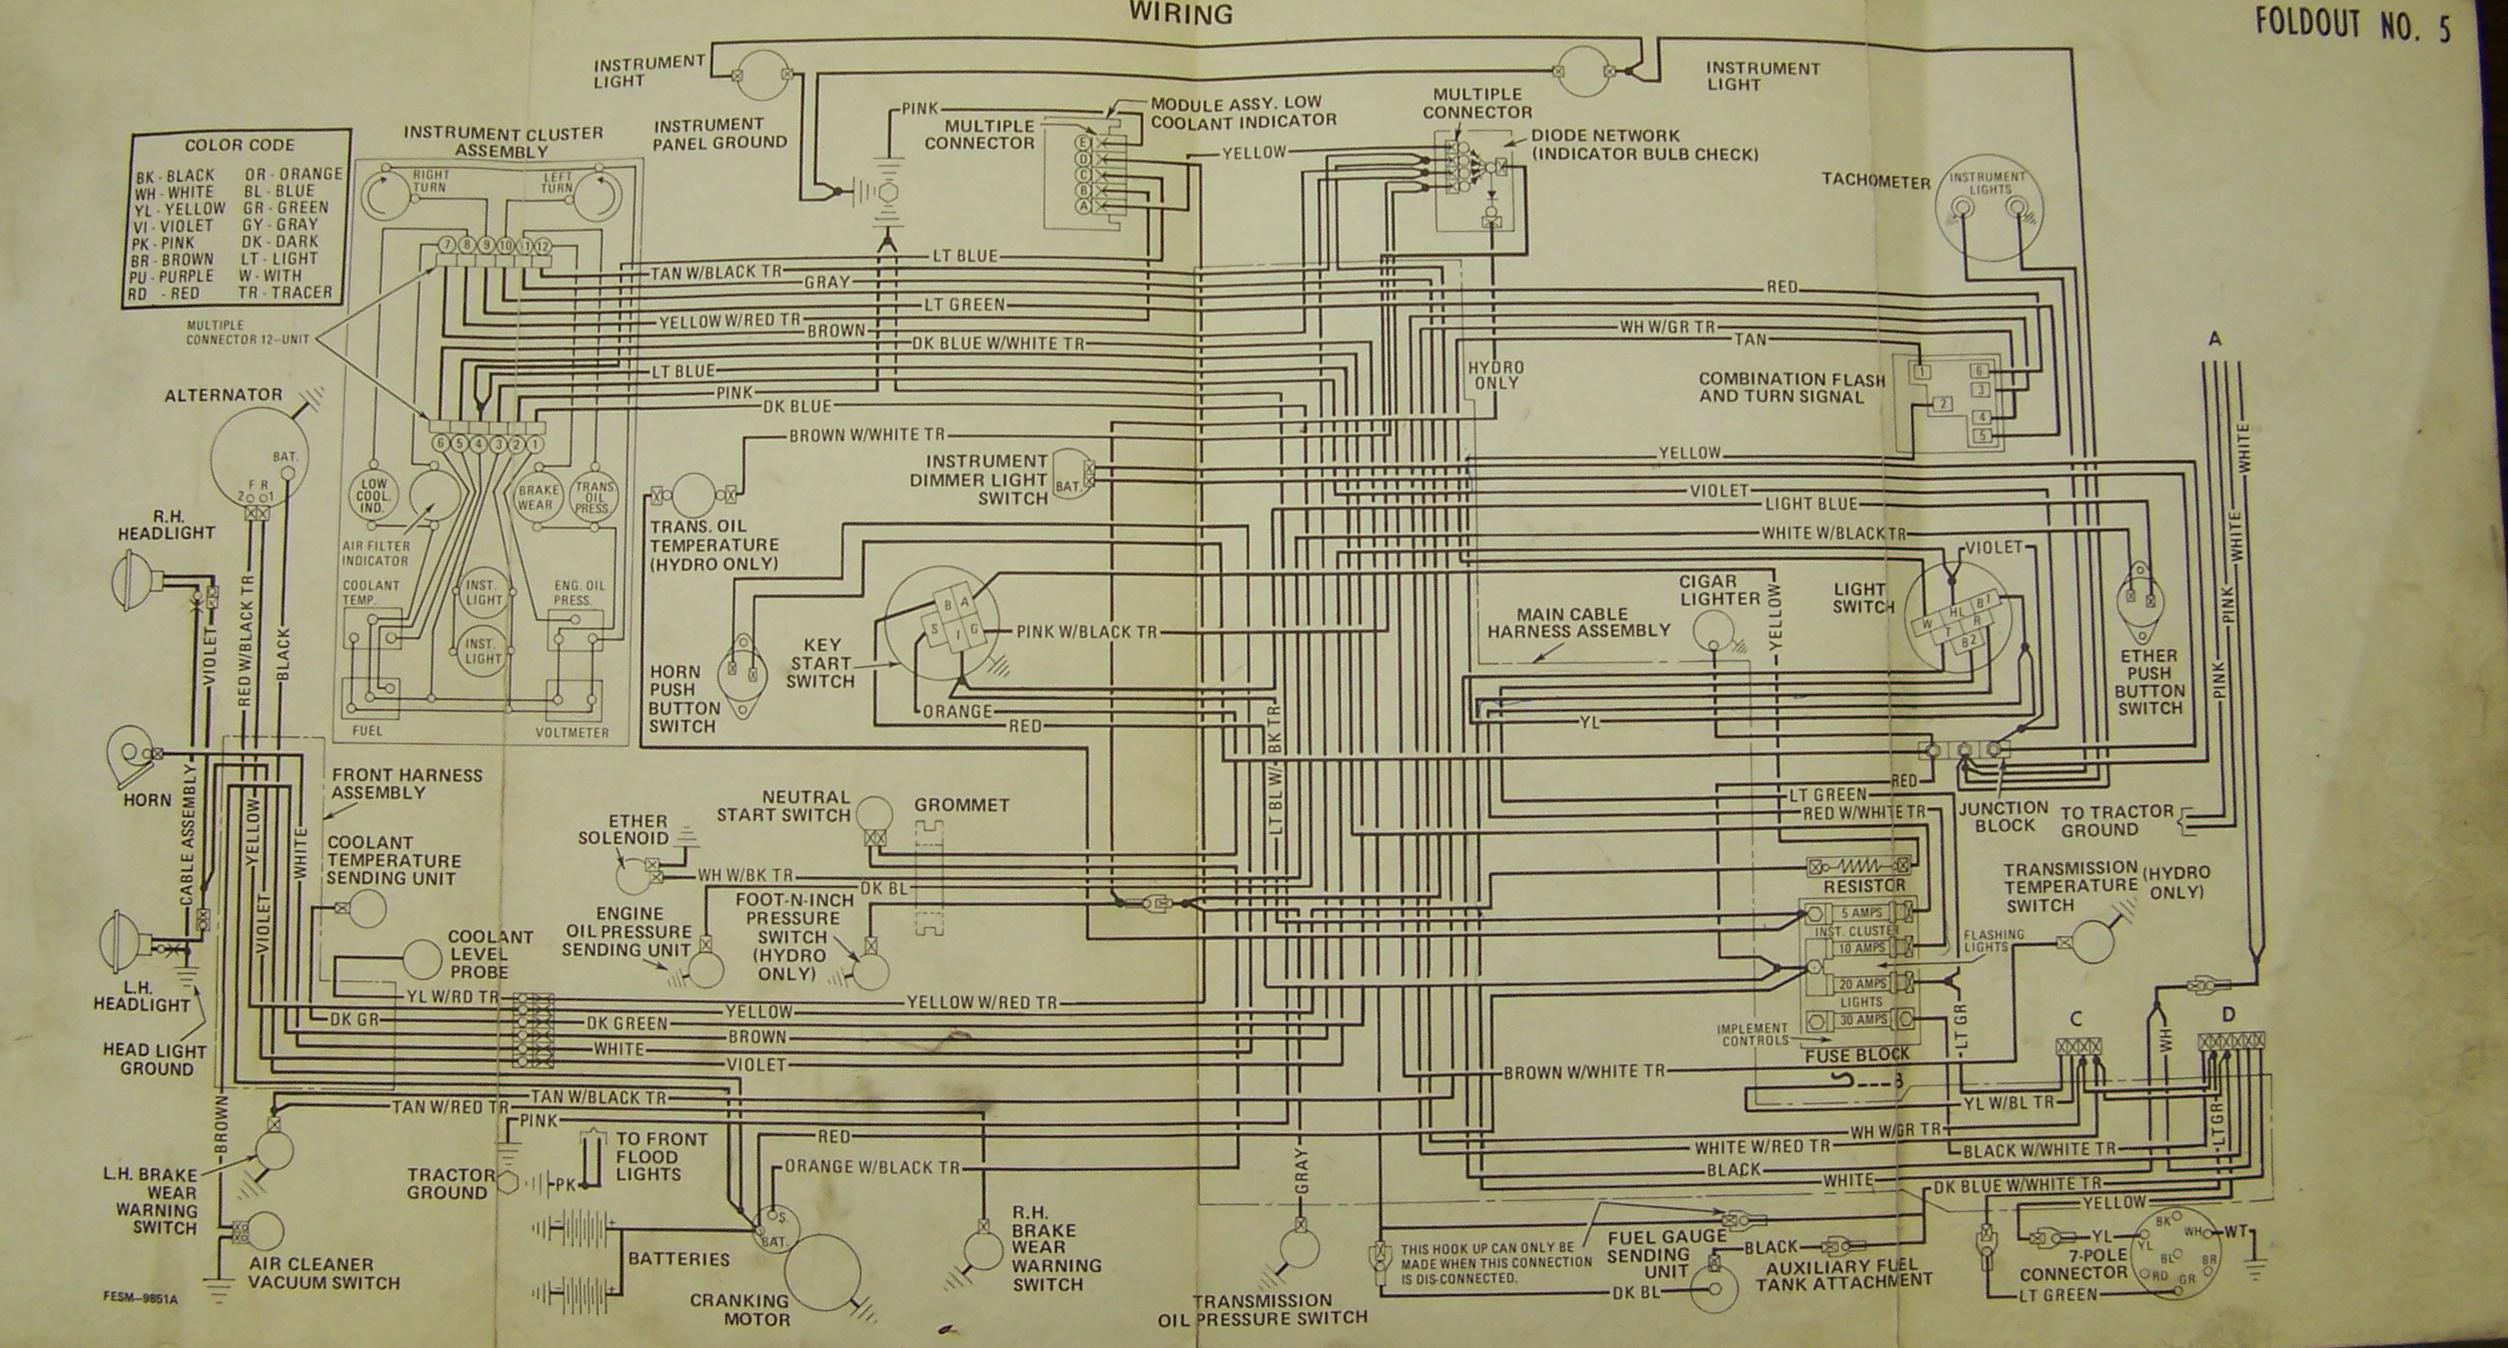 86series5 ih 574 wiring diagram case 430 tractor wiring diagram \u2022 wiring International 4700 Wiring Diagram PDF at gsmx.co